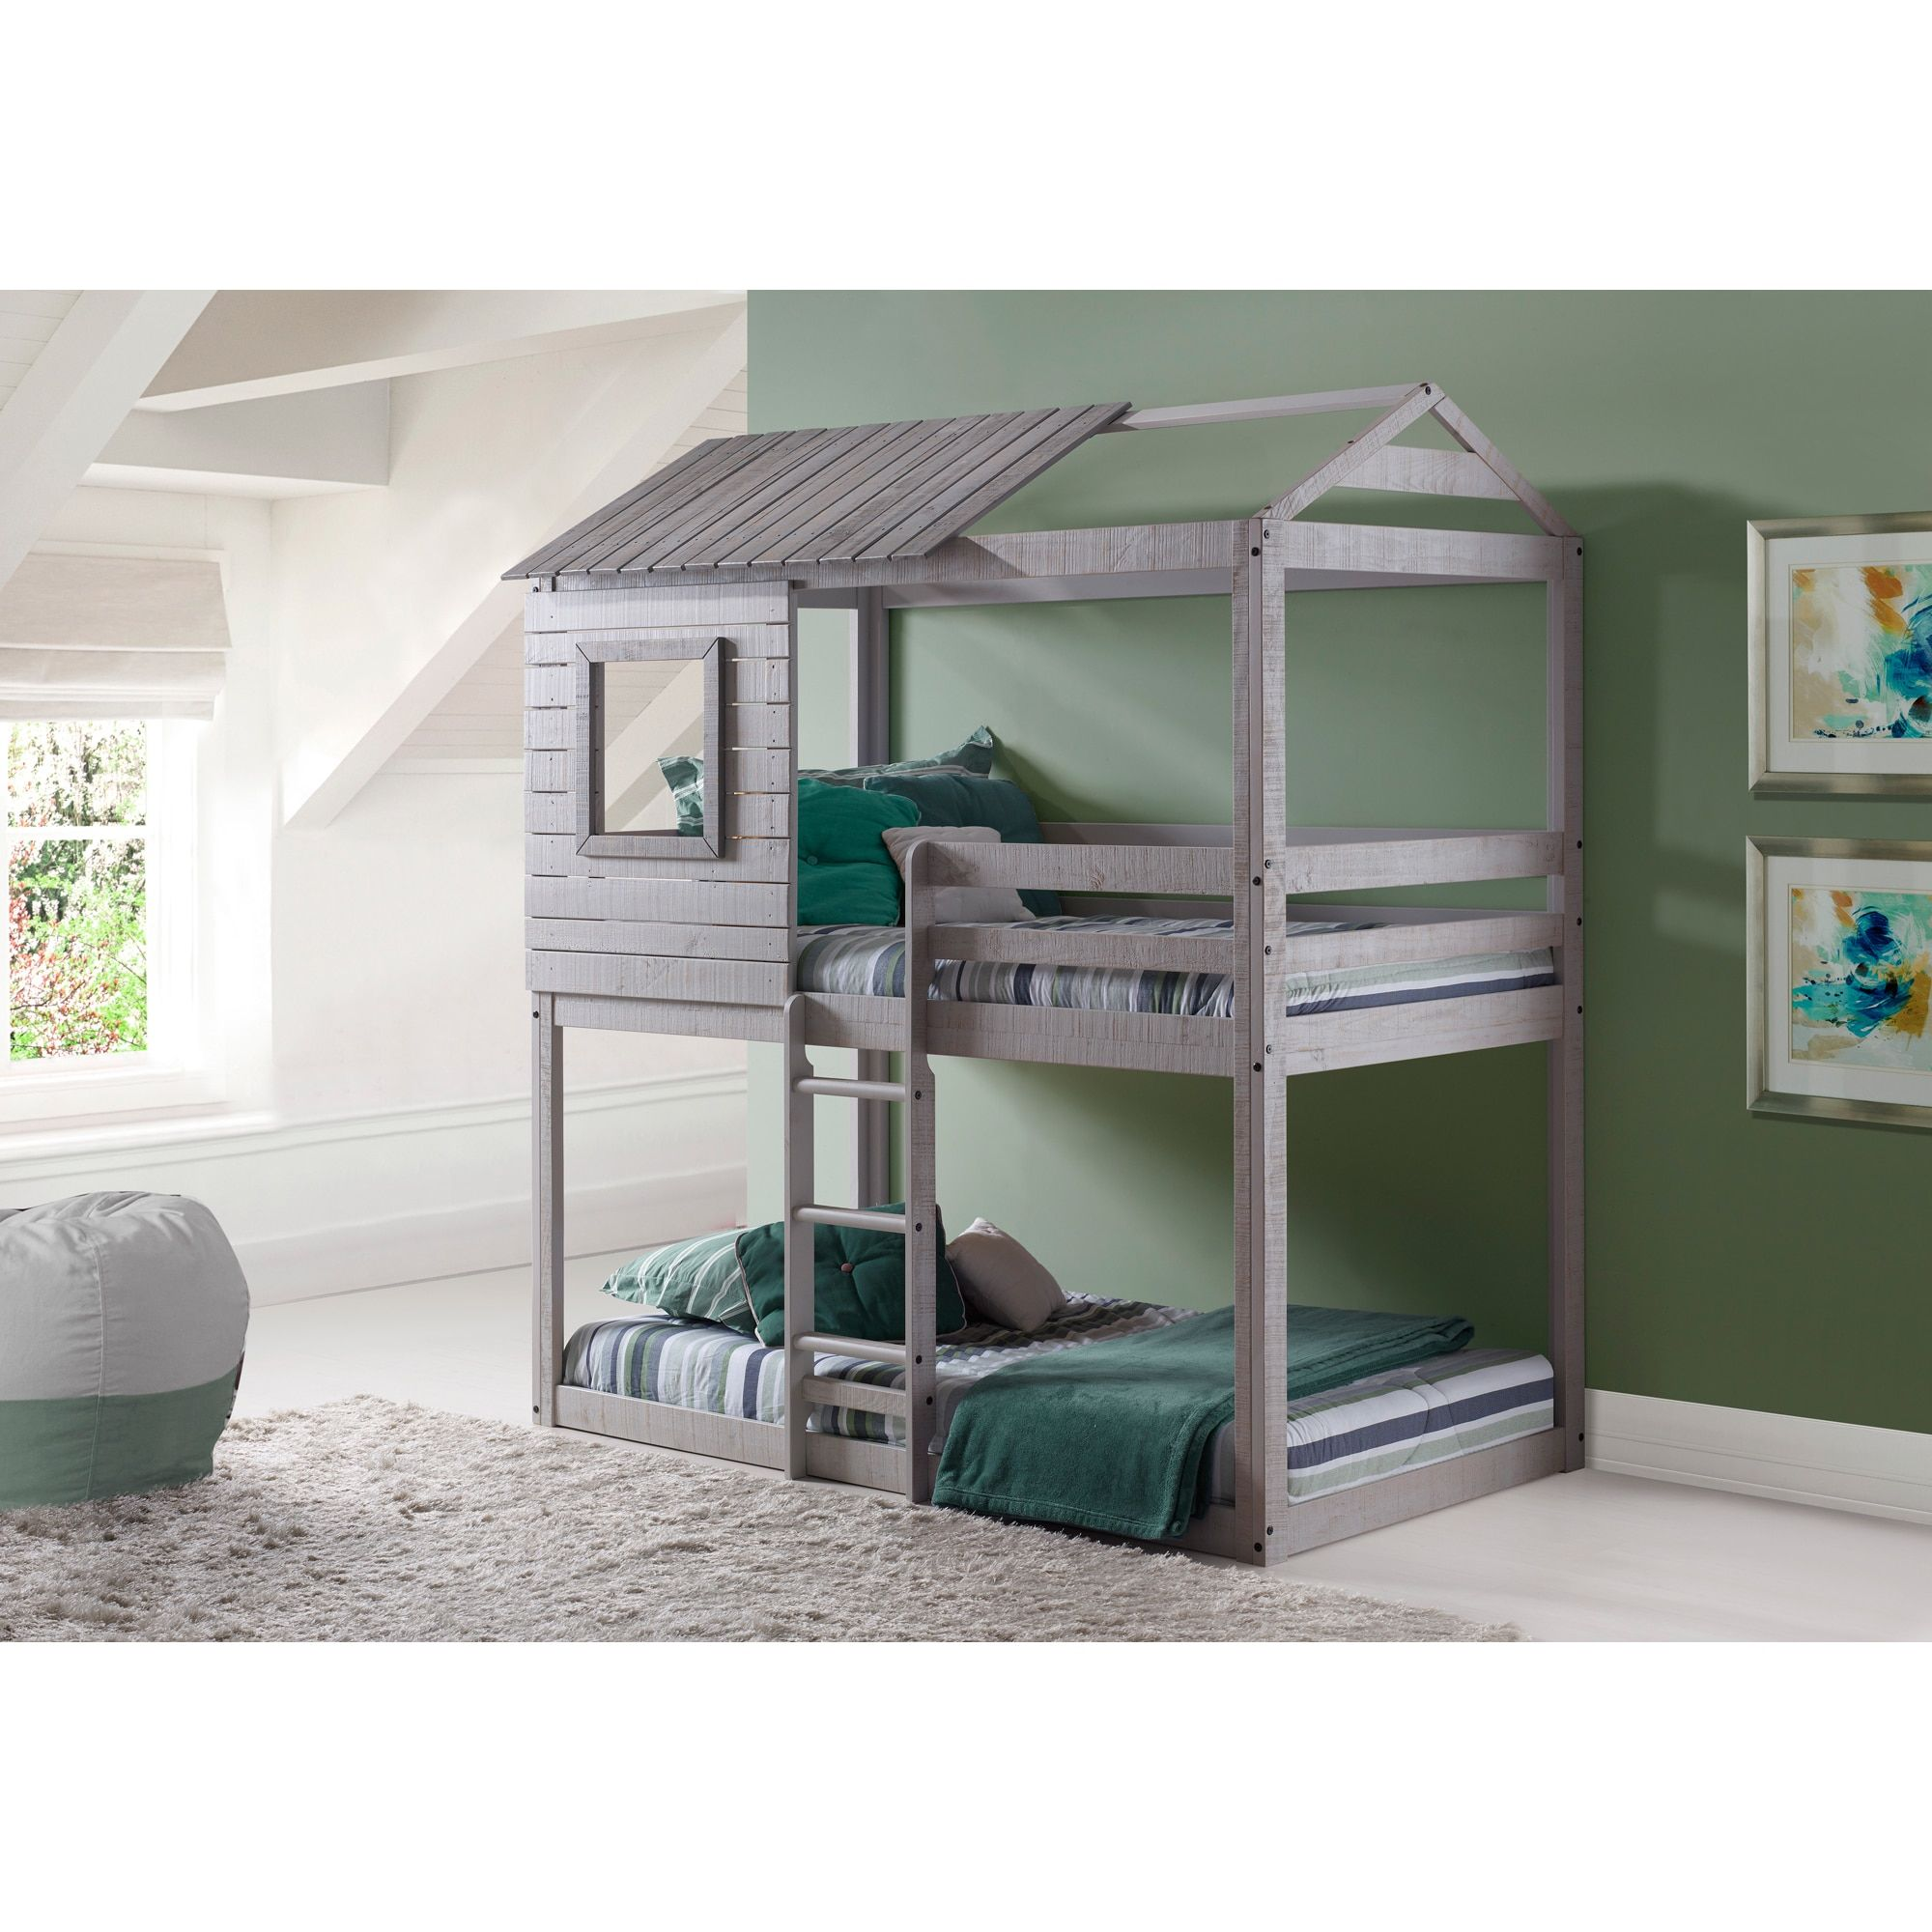 Under loft bed lighting ideas  Donco Kids LoftStyle Light Grey Twin over Twin Bunk Bed  Bunk bed